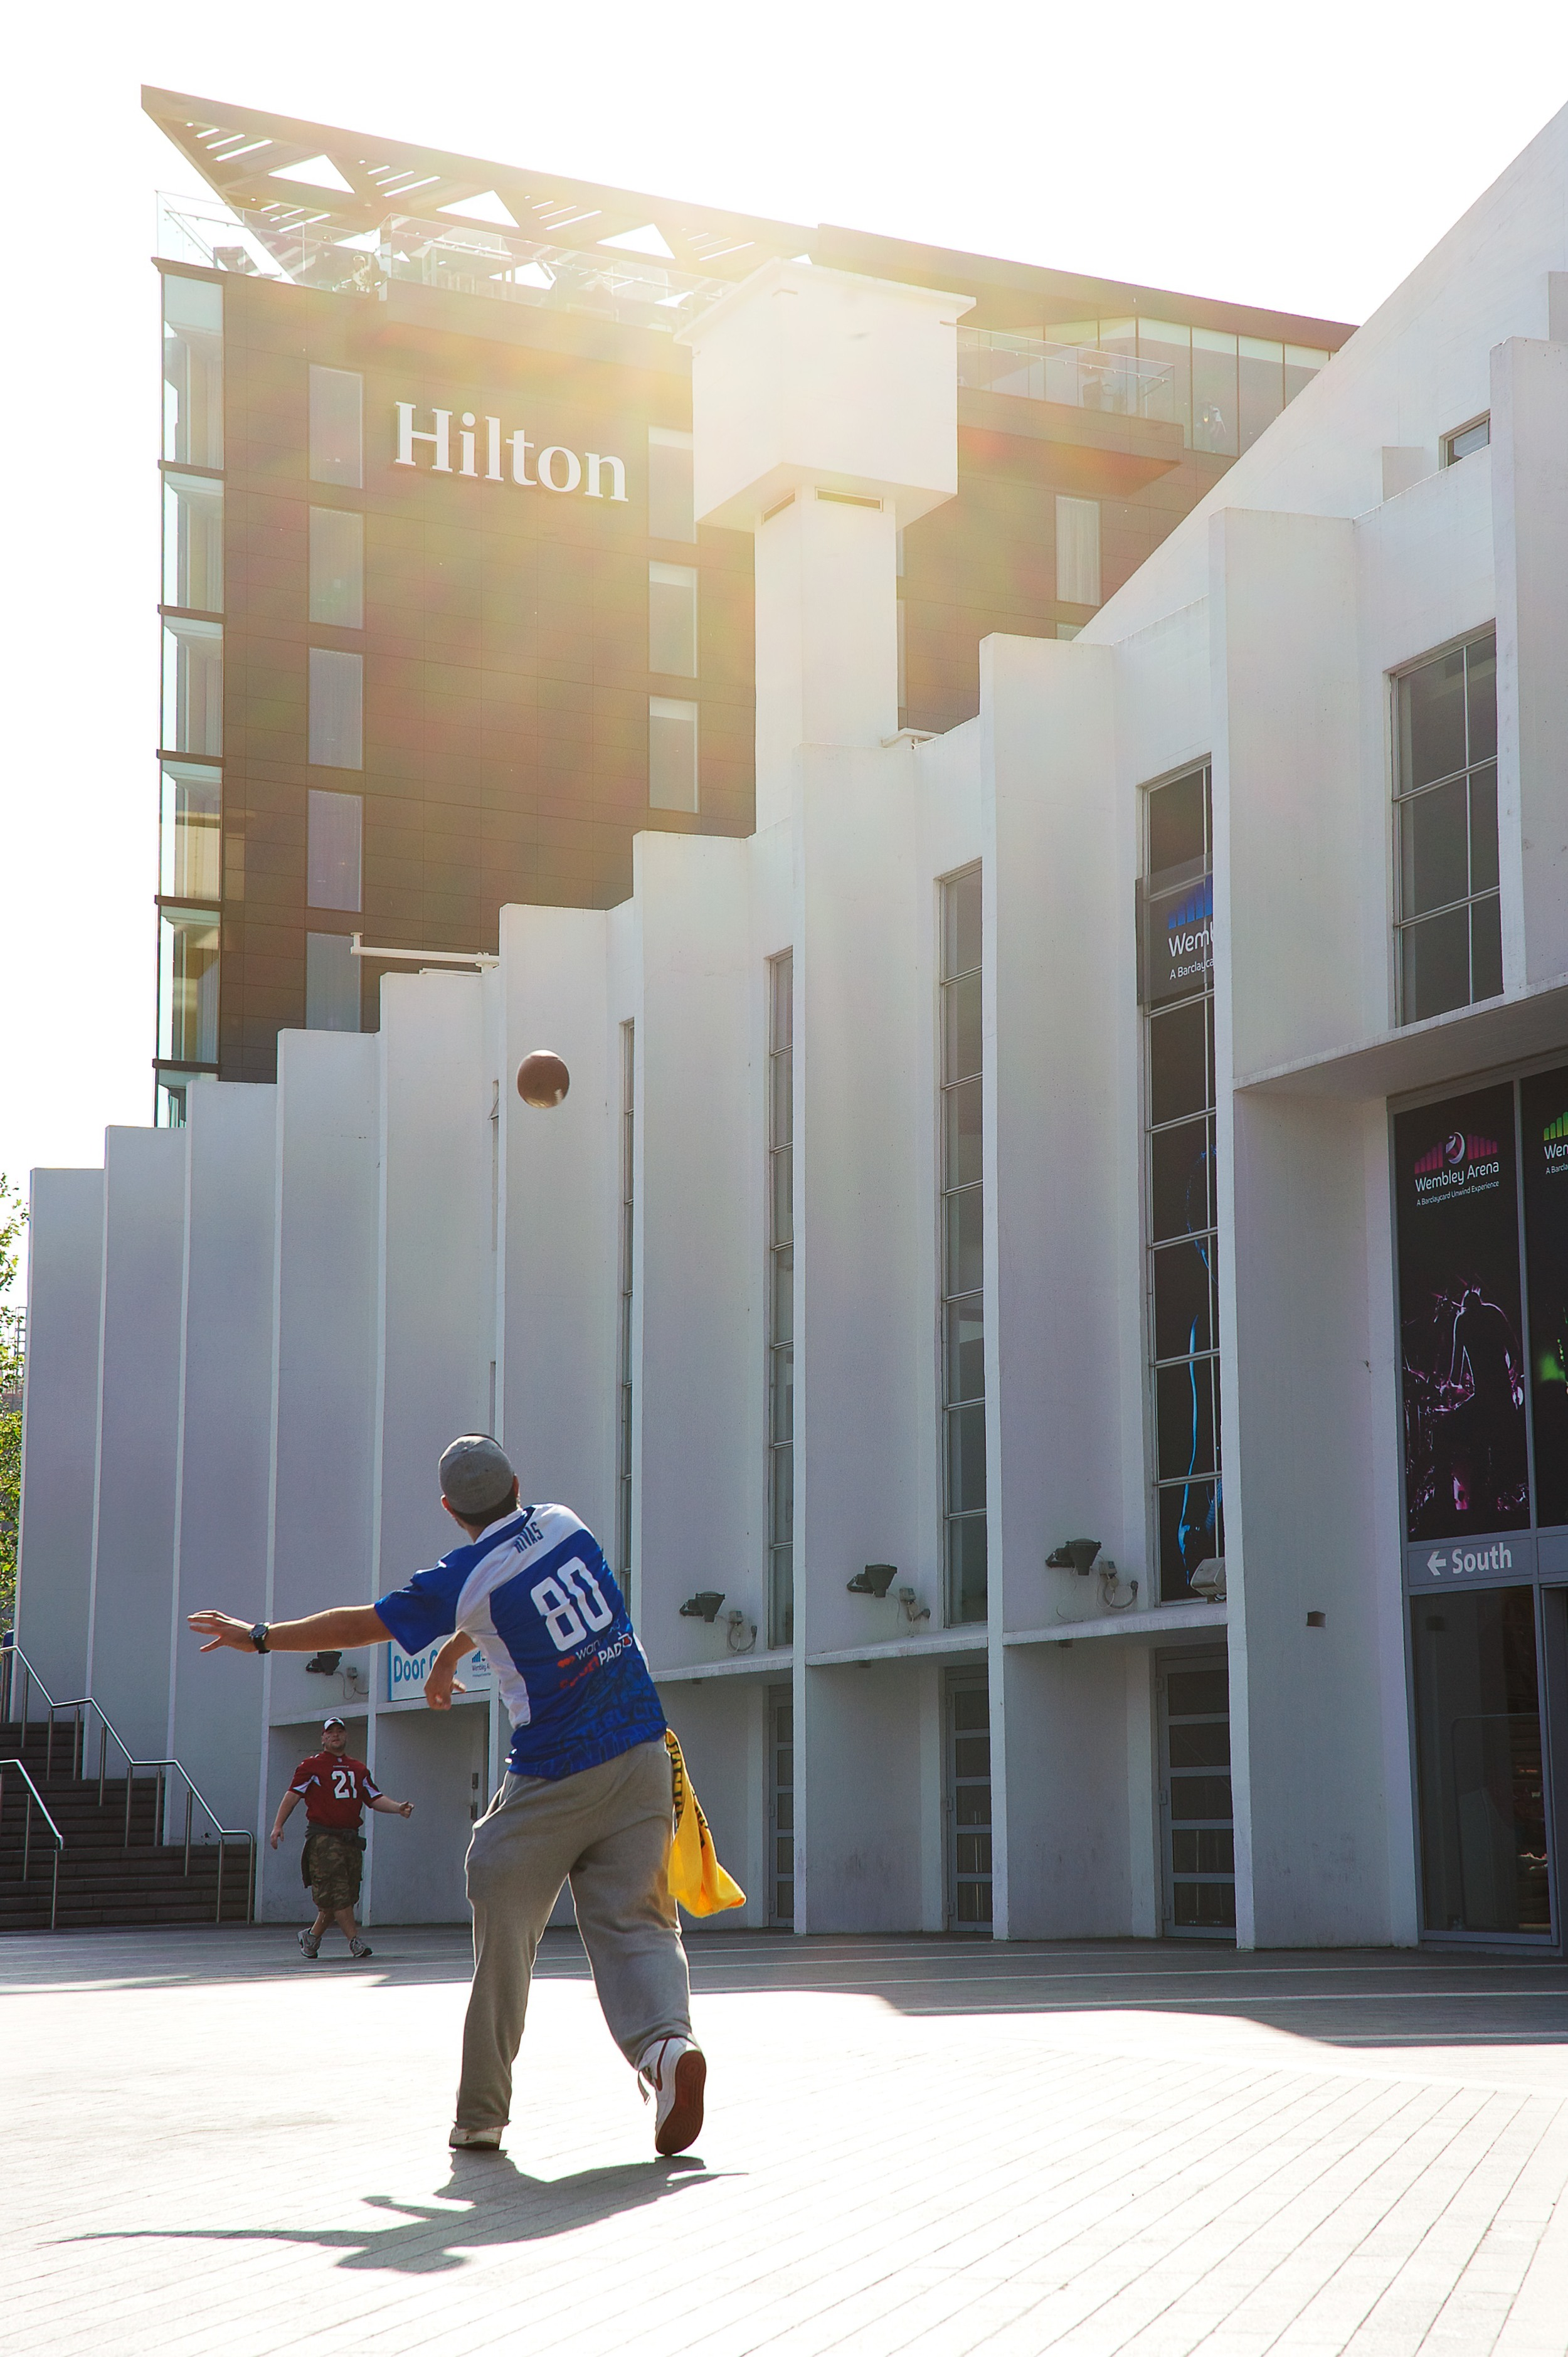 American football fans play in front of The Hilton Hotel for a lifestyle shoot in Wembley during an NFL match